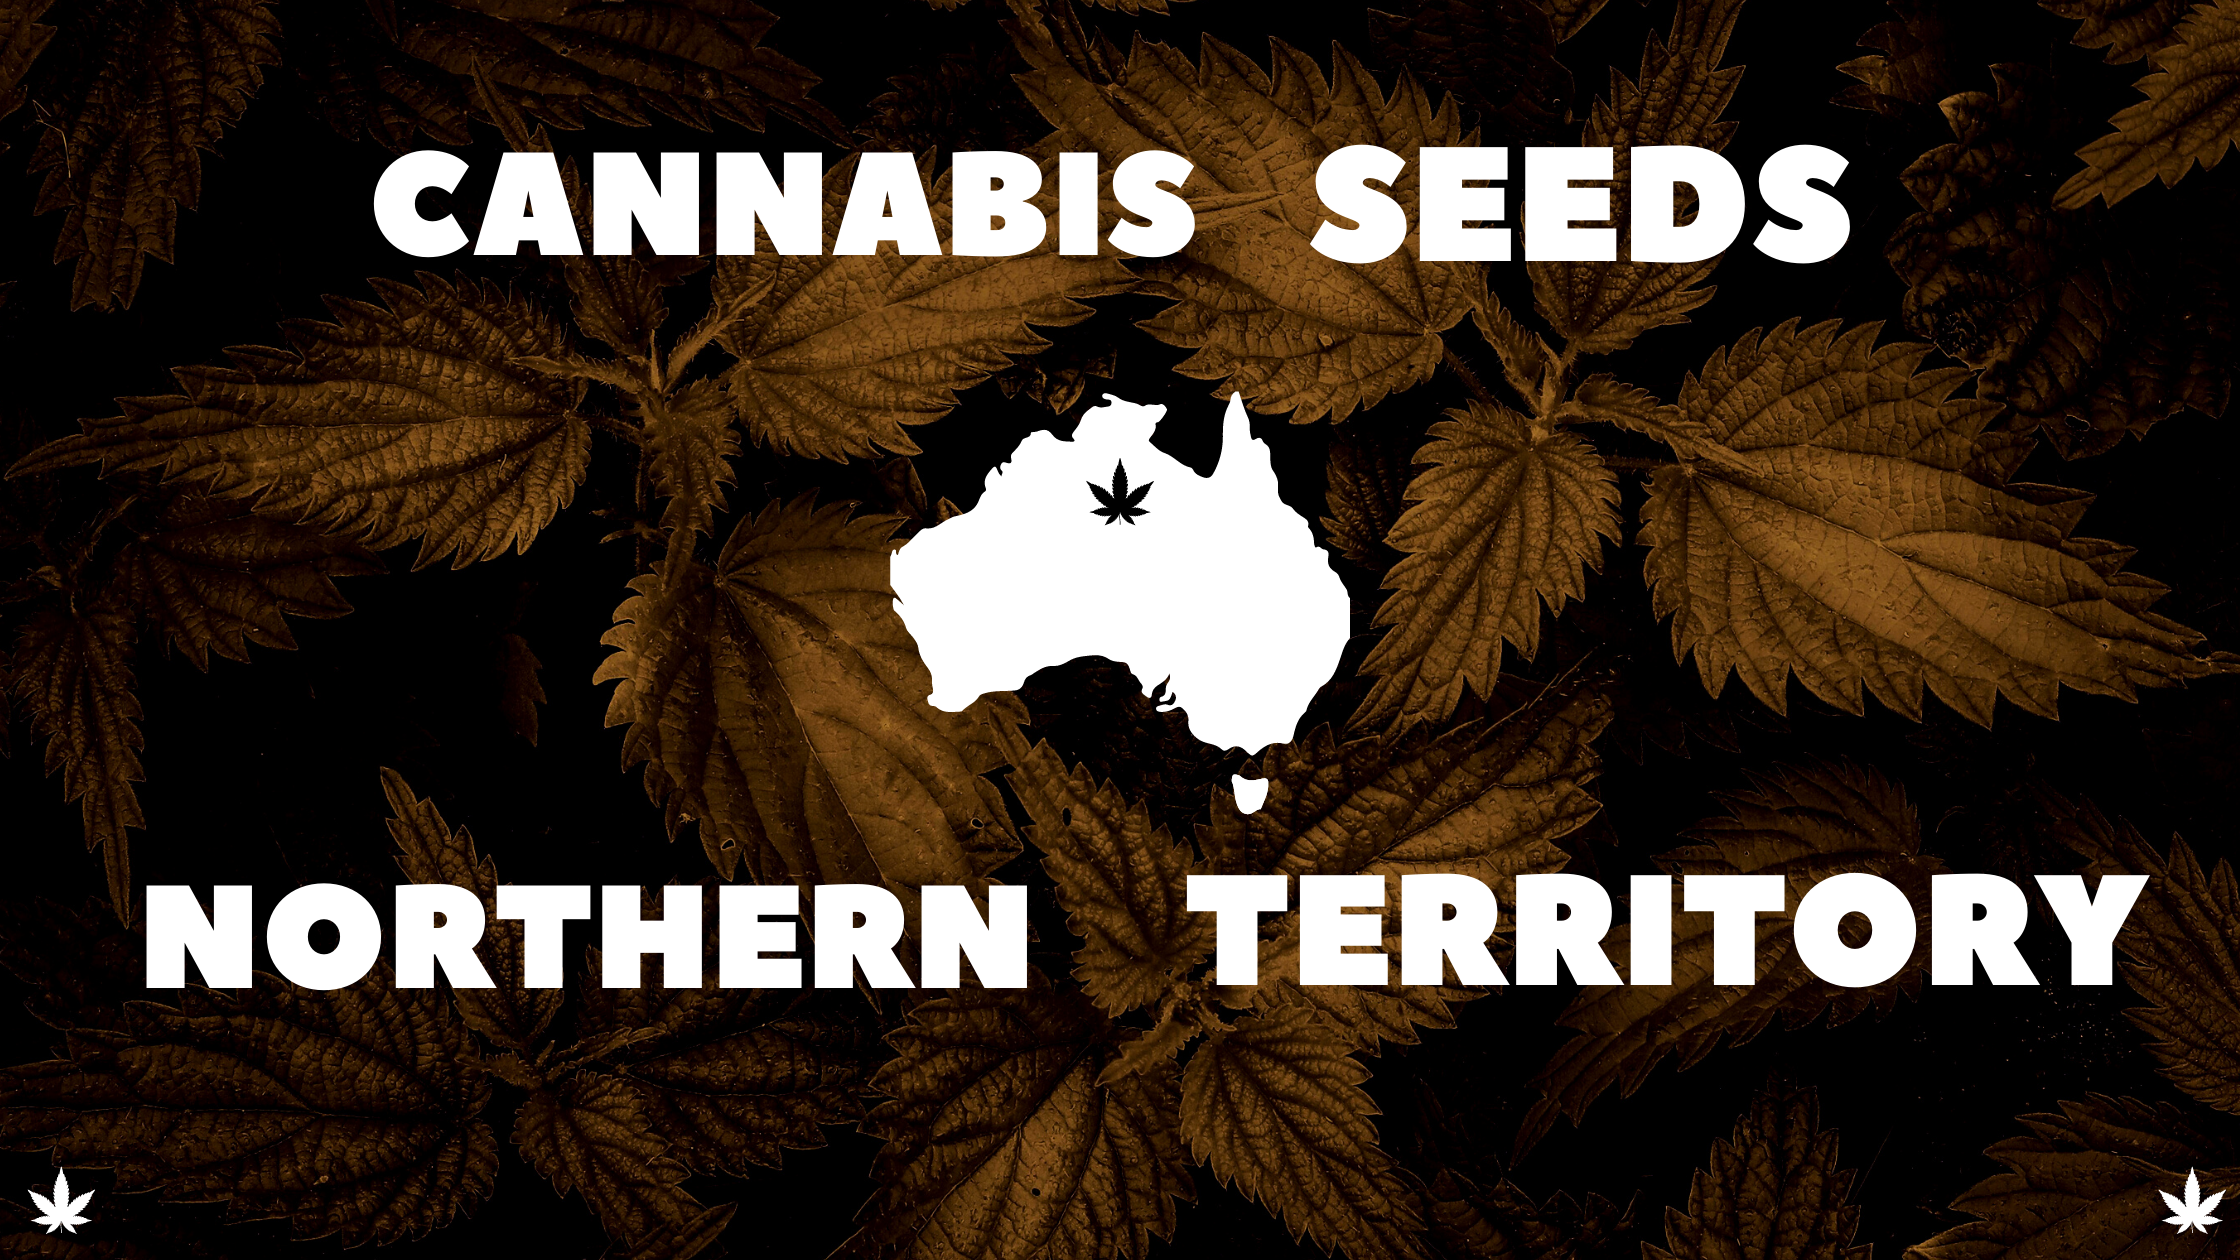 Cannabis-seeds-northern-territory-banner